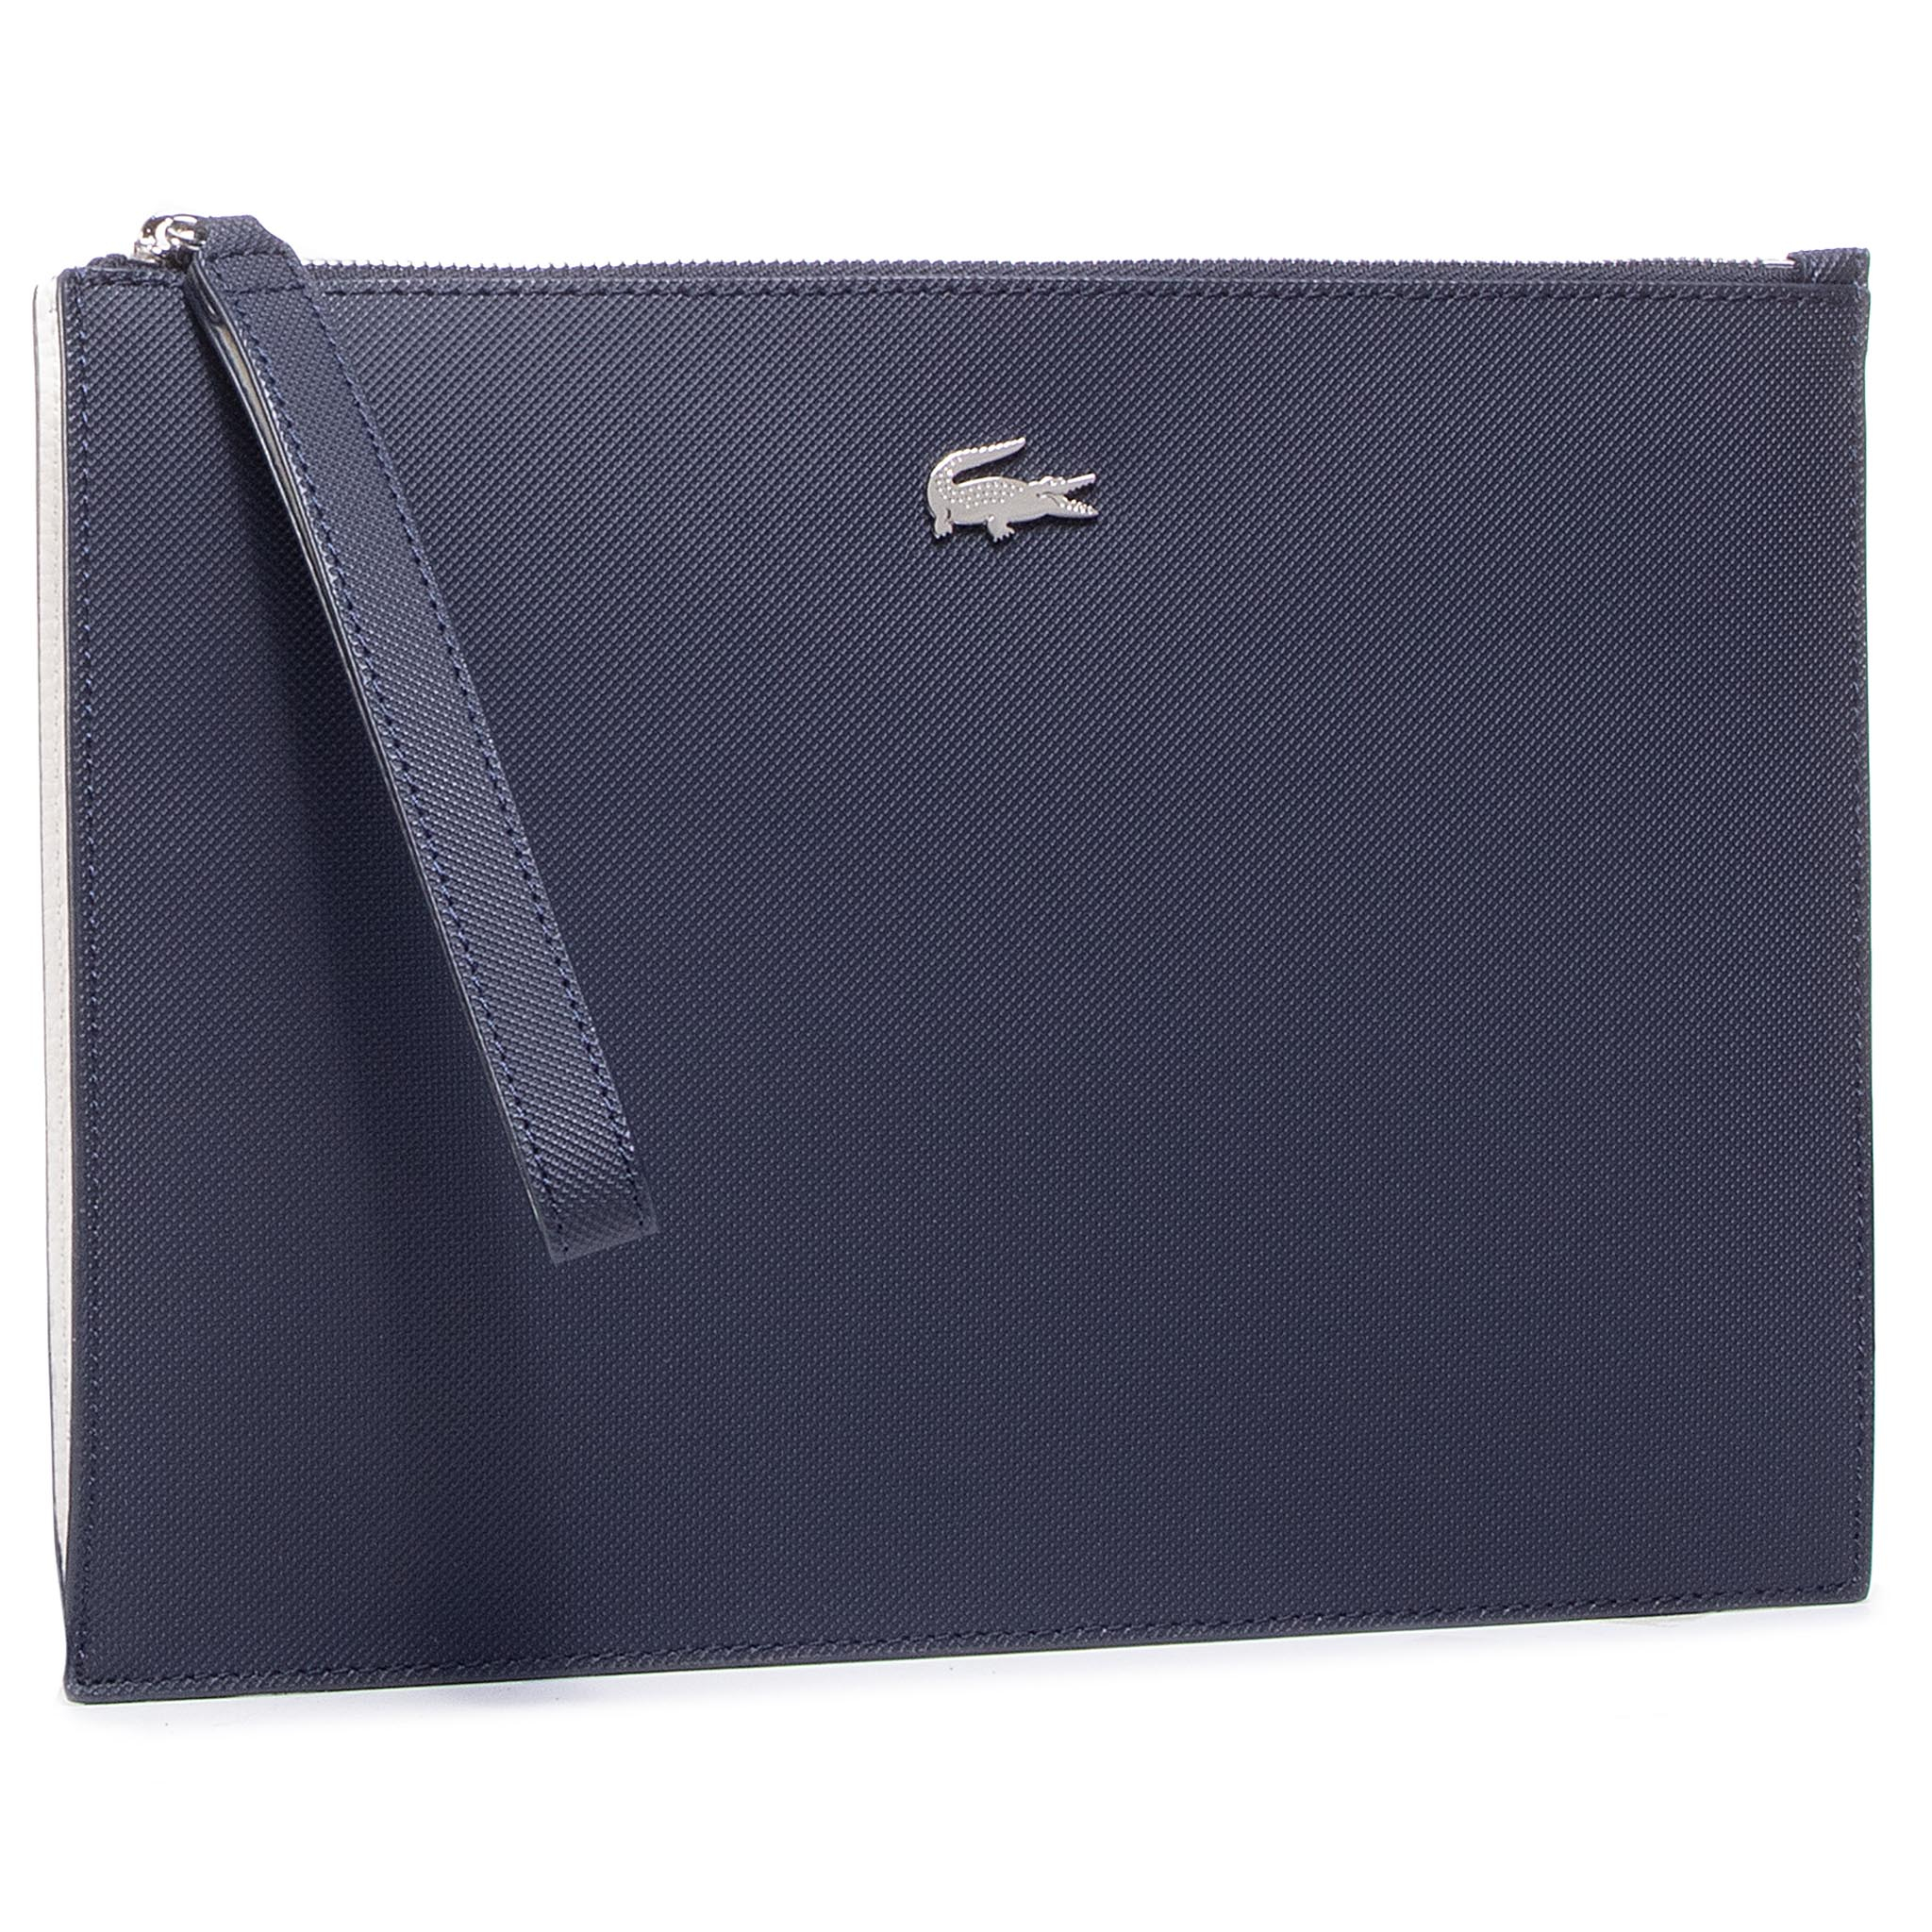 Image of Handtasche LACOSTE - Clutch NF2791AA Clay/Pink Madras C93